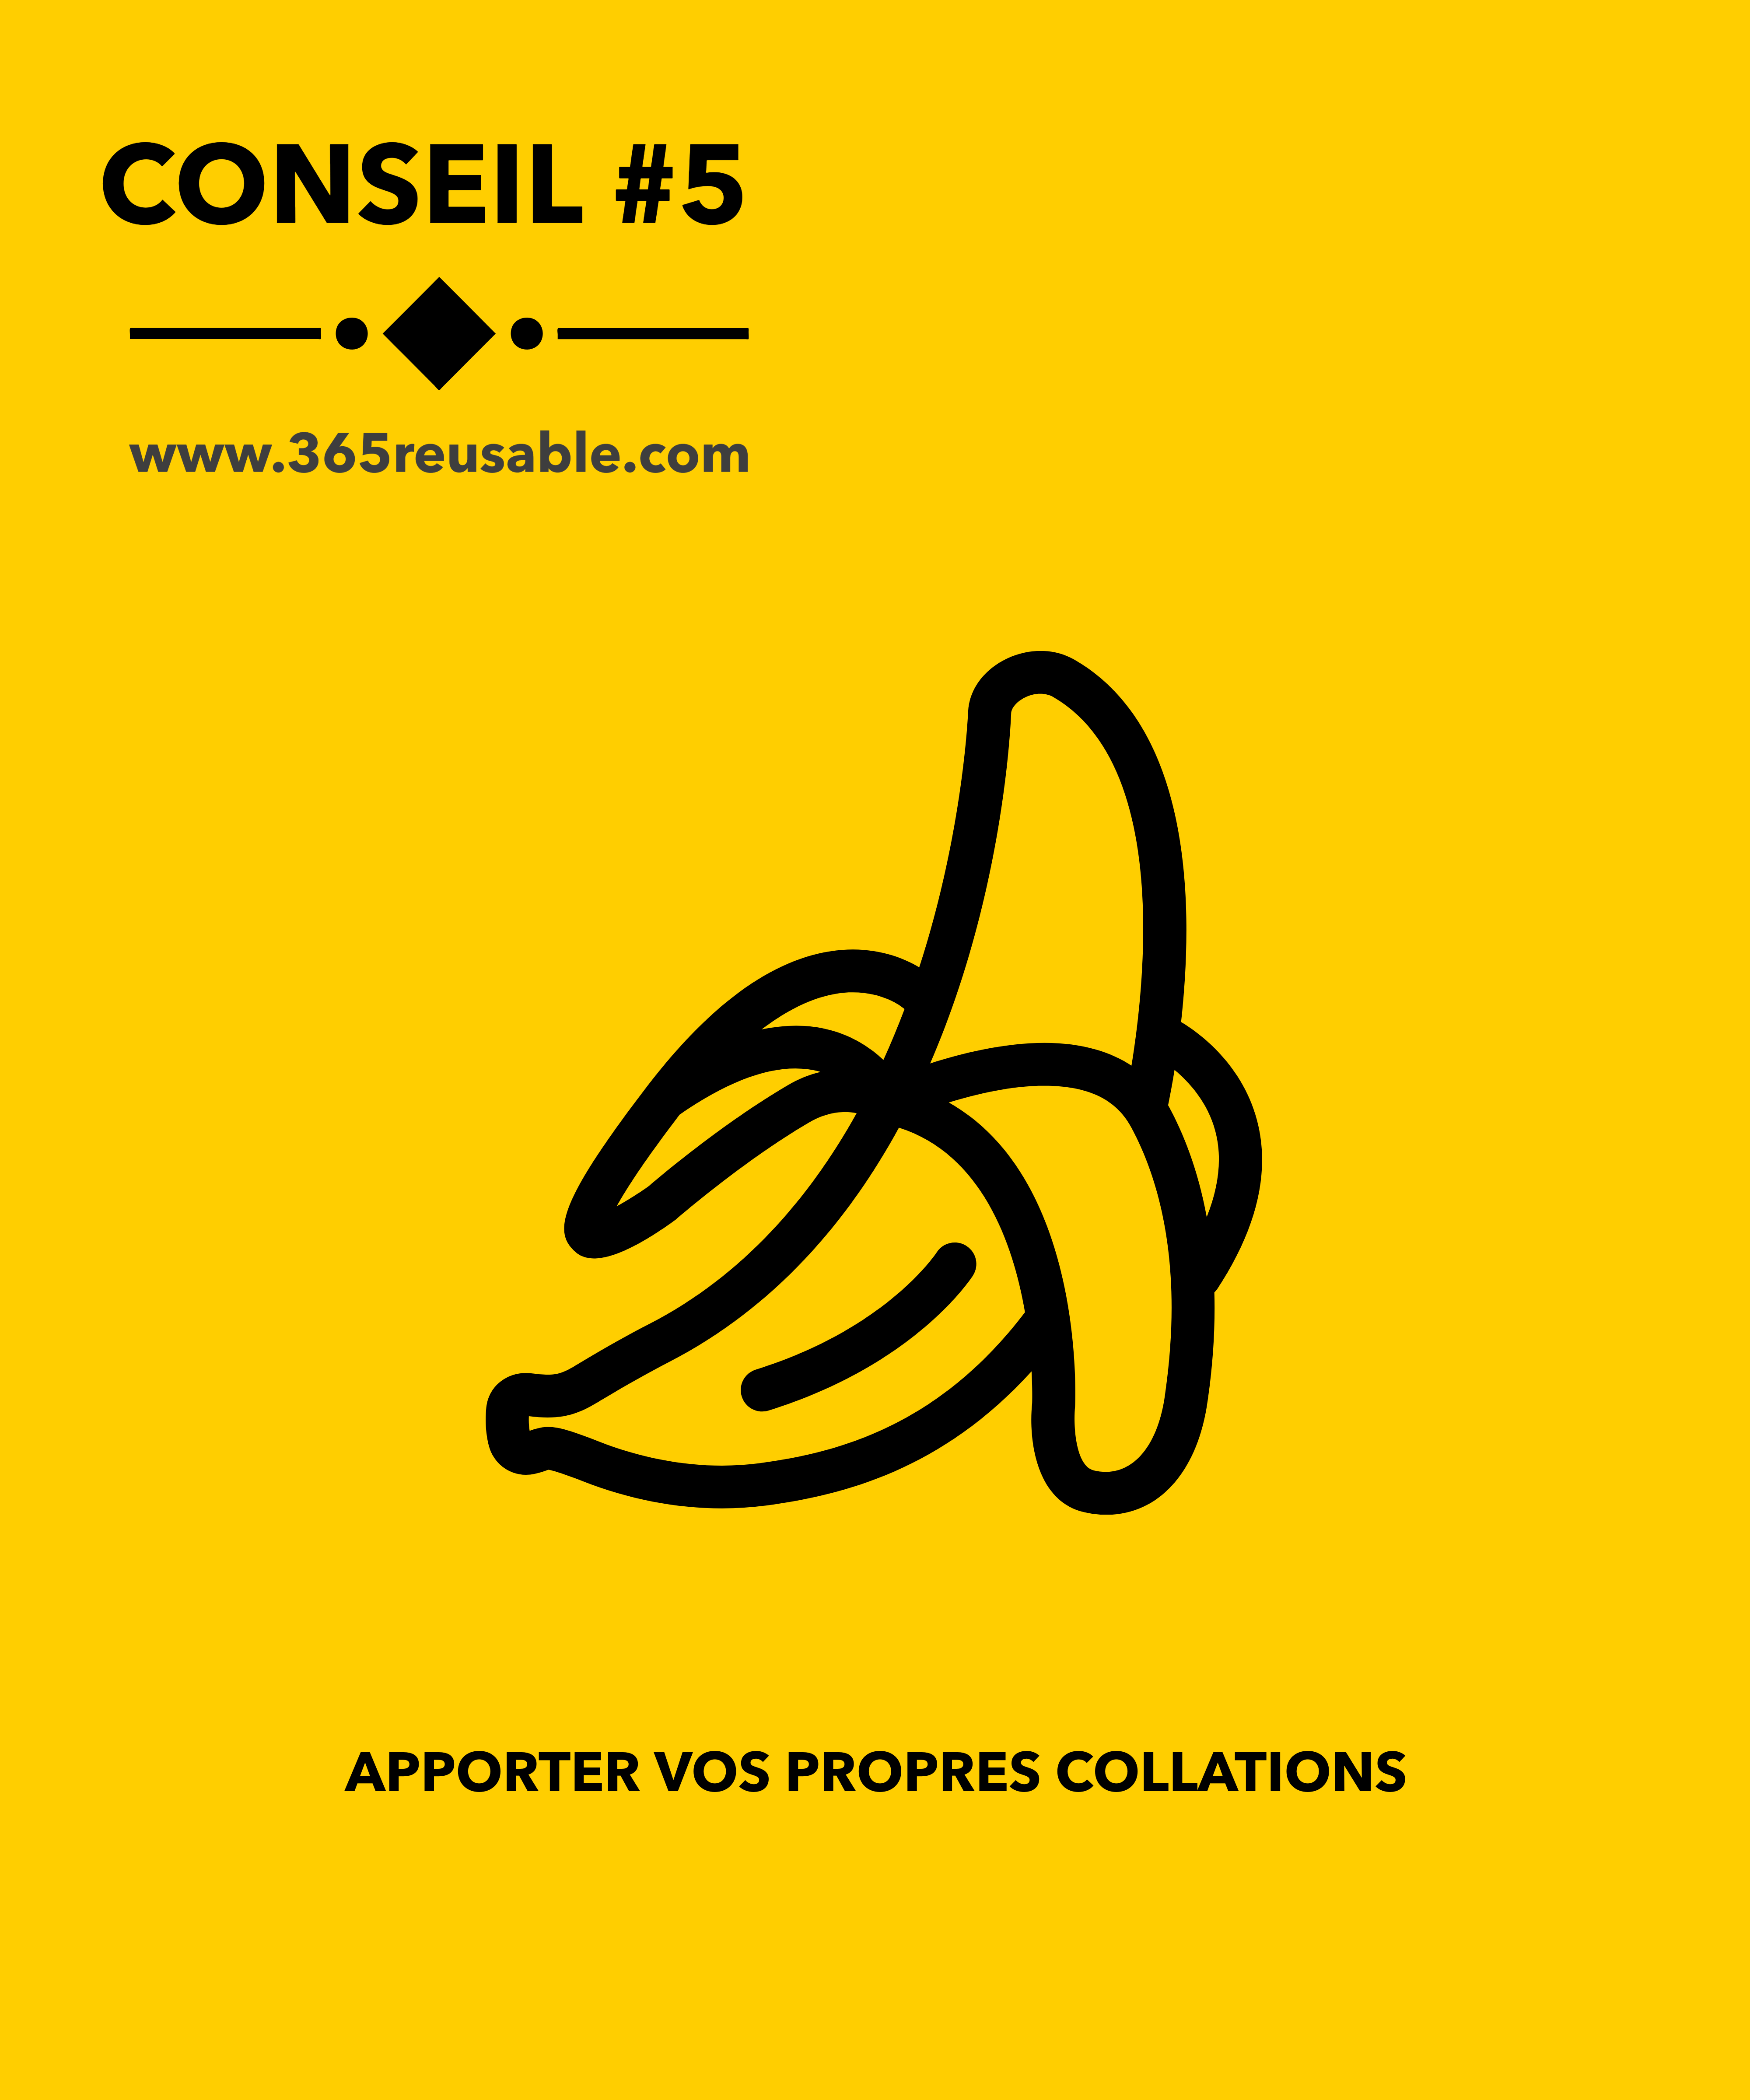 #5 APPORTER VOS PROPRES COLLATIONS